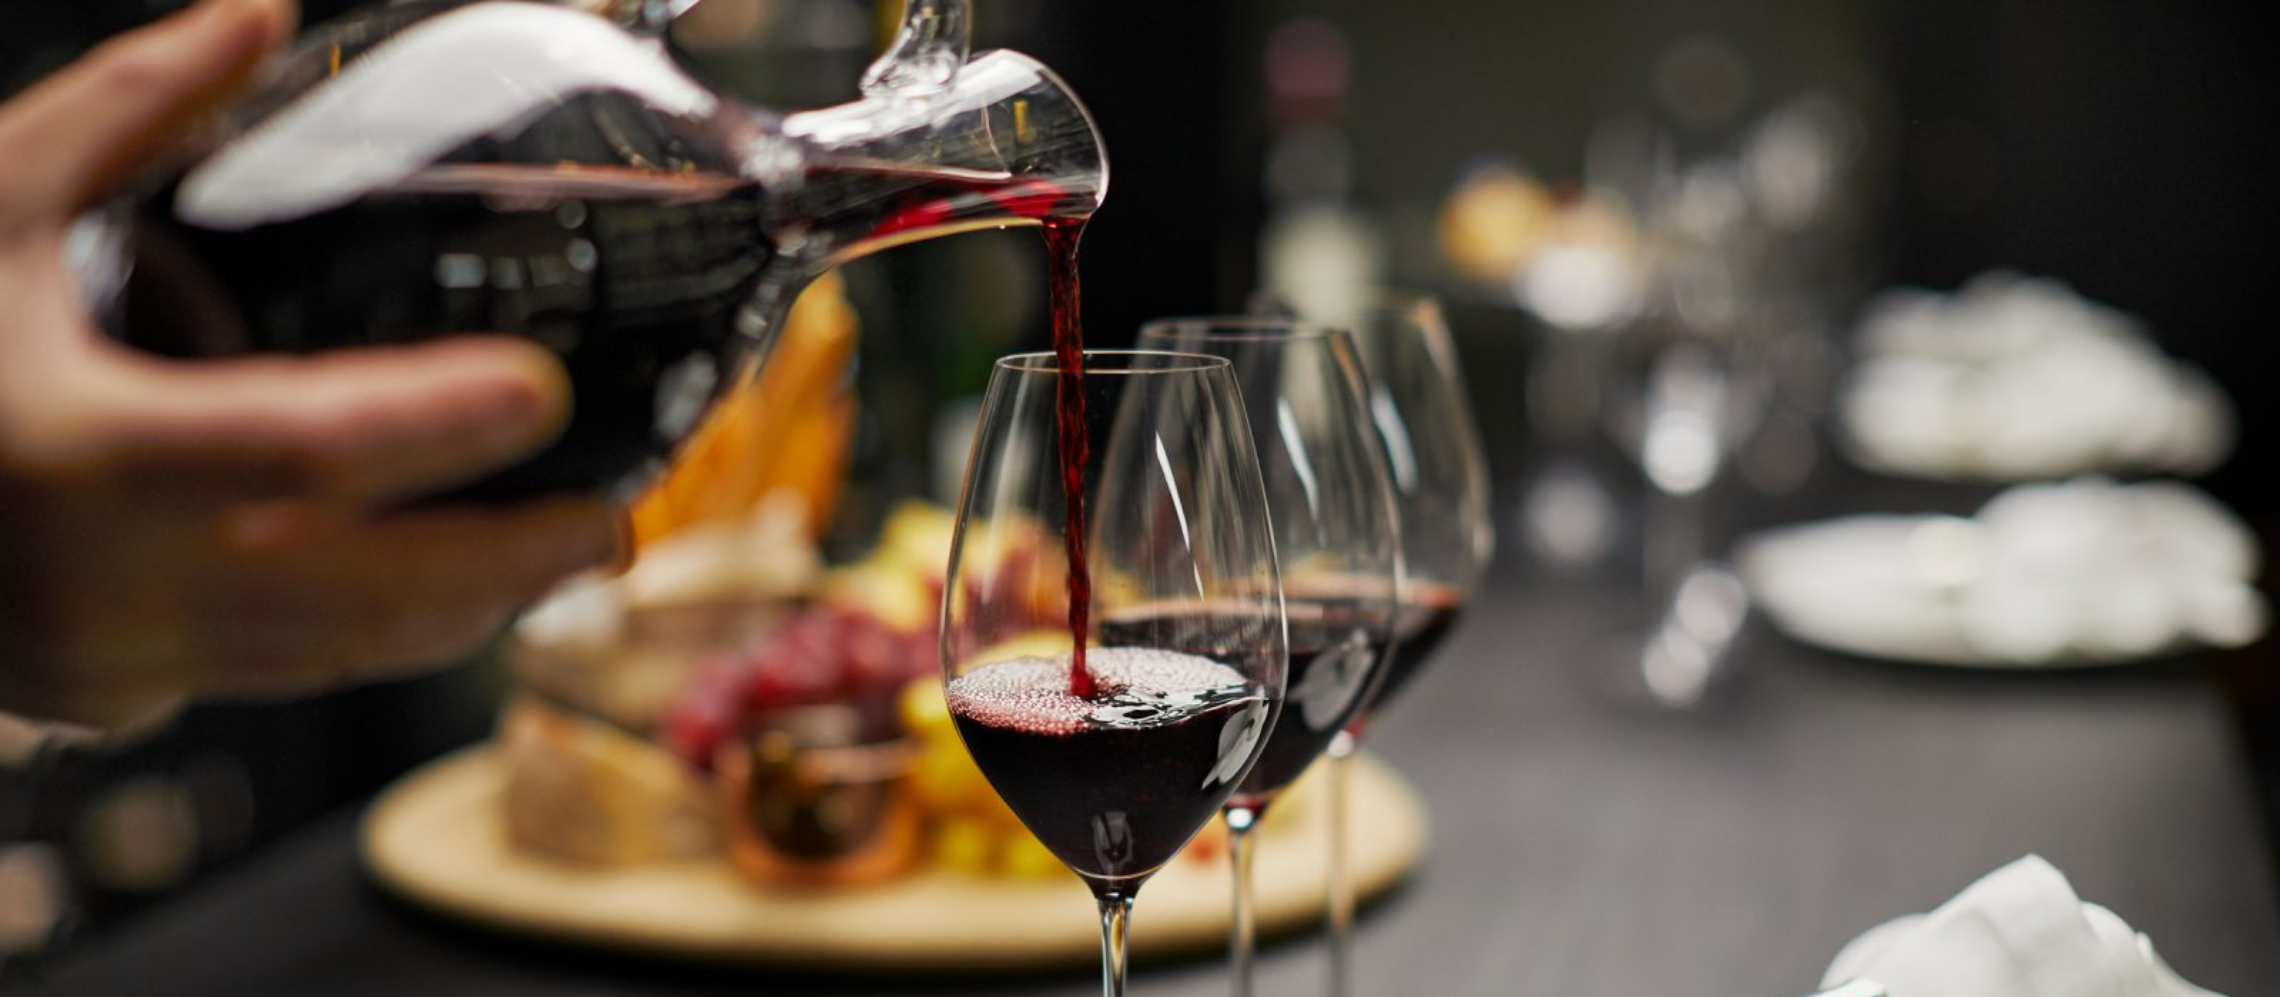 Photo for: How Sommeliers Pick Wines For Their List